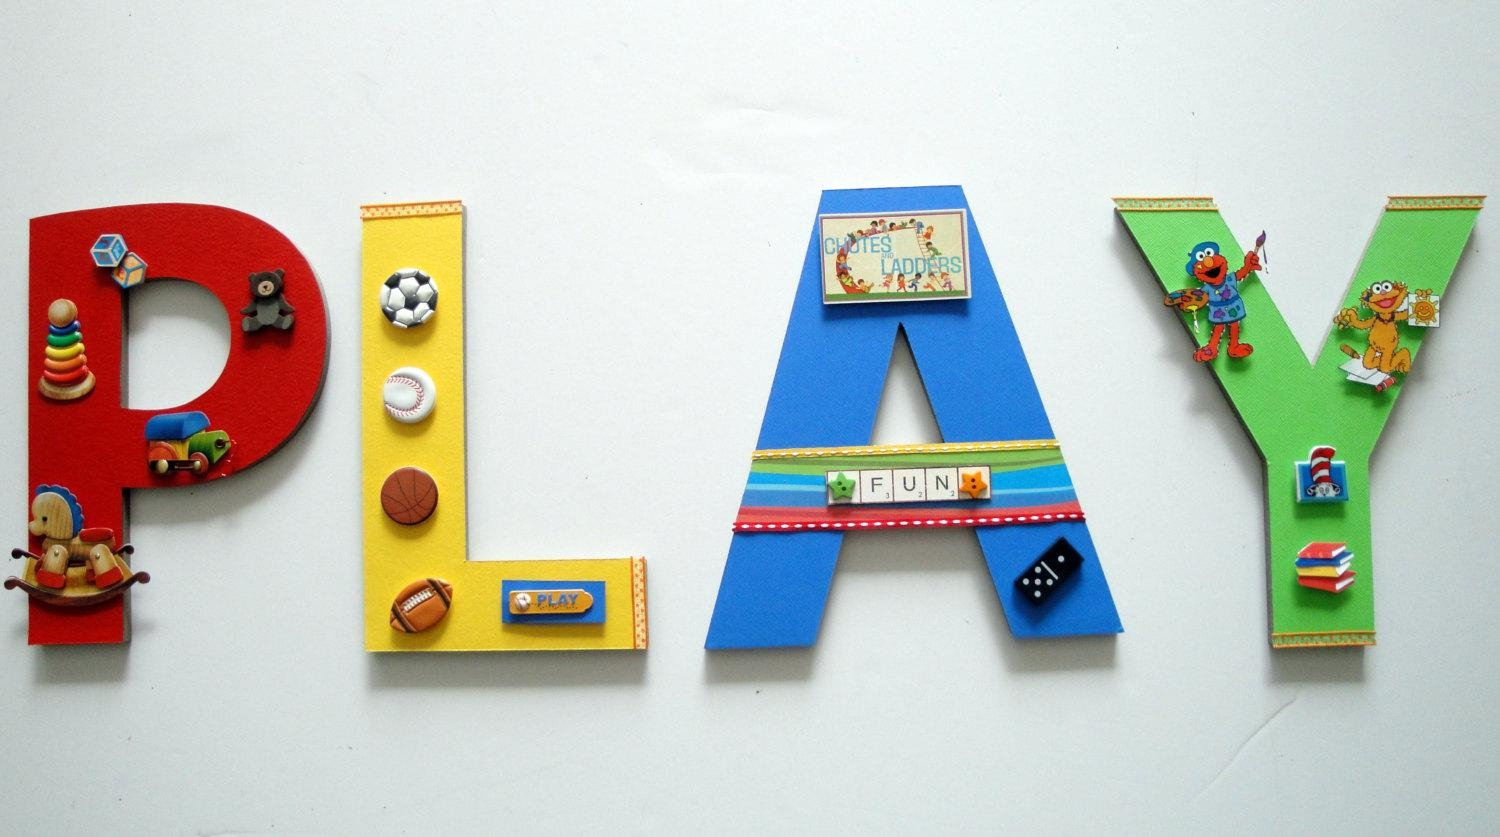 Playroom Wall Letters Playroom Wall Art Toys And Games Wall Inside Wall Art For Playroom (View 12 of 20)